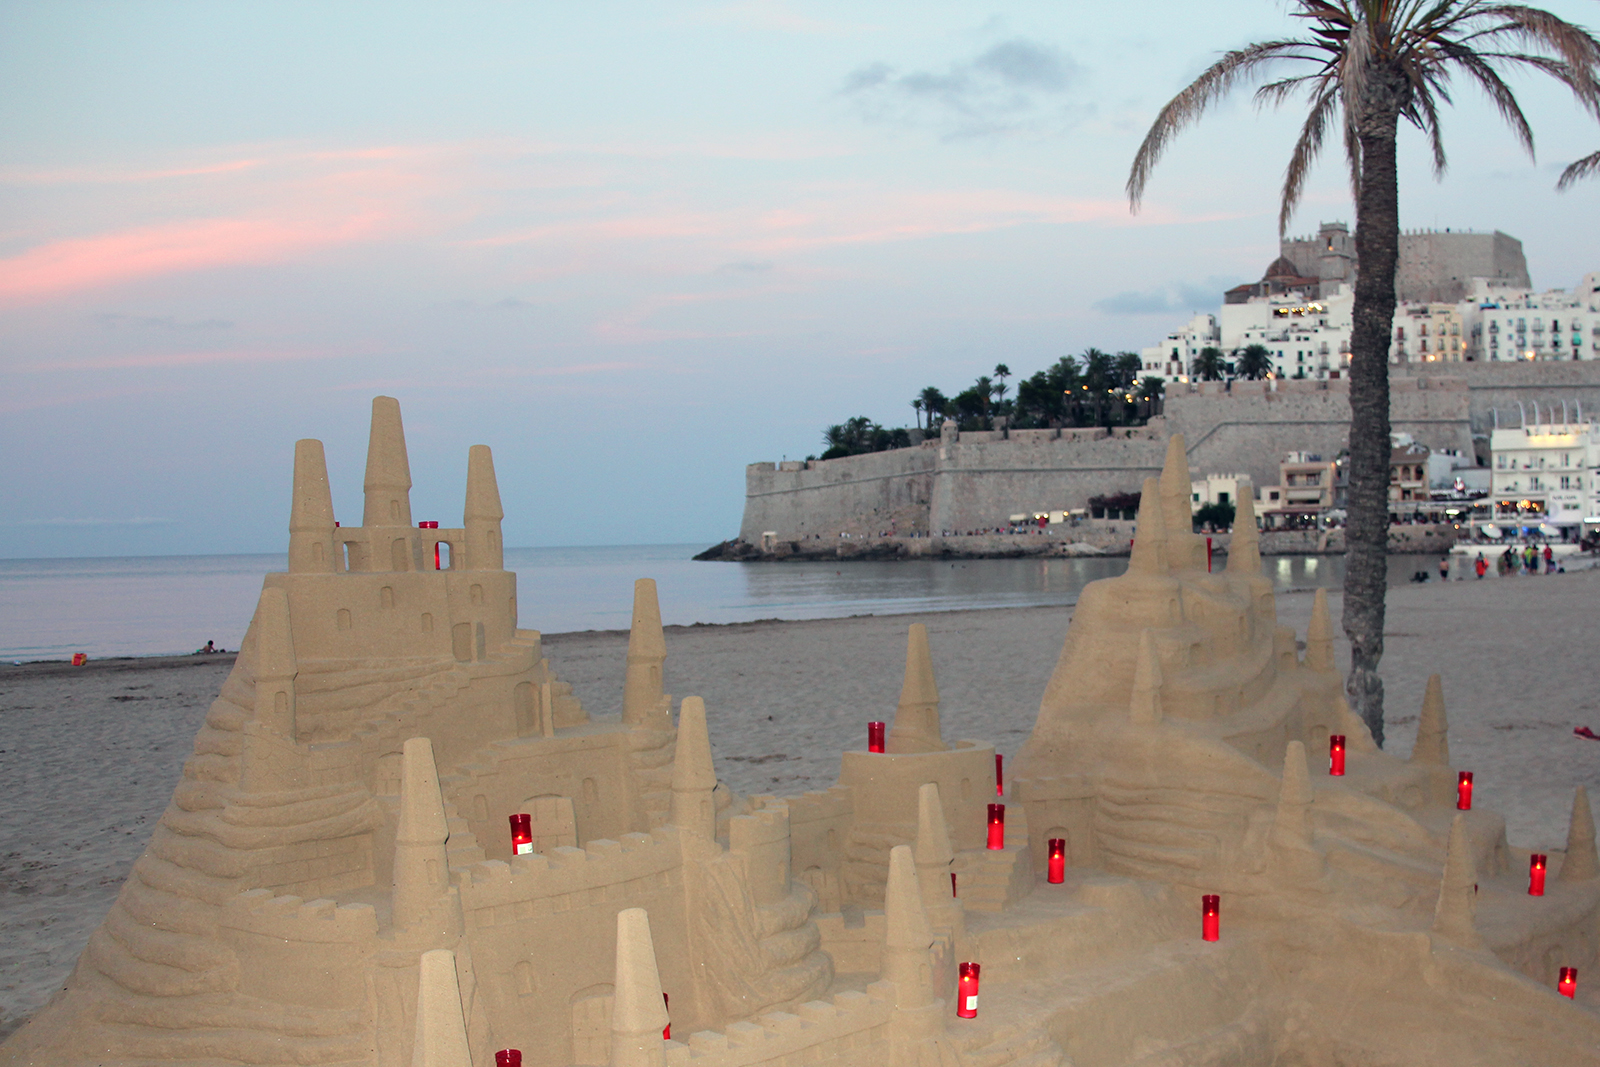 Peniscola Sand Castle and Real Castle At Dusk